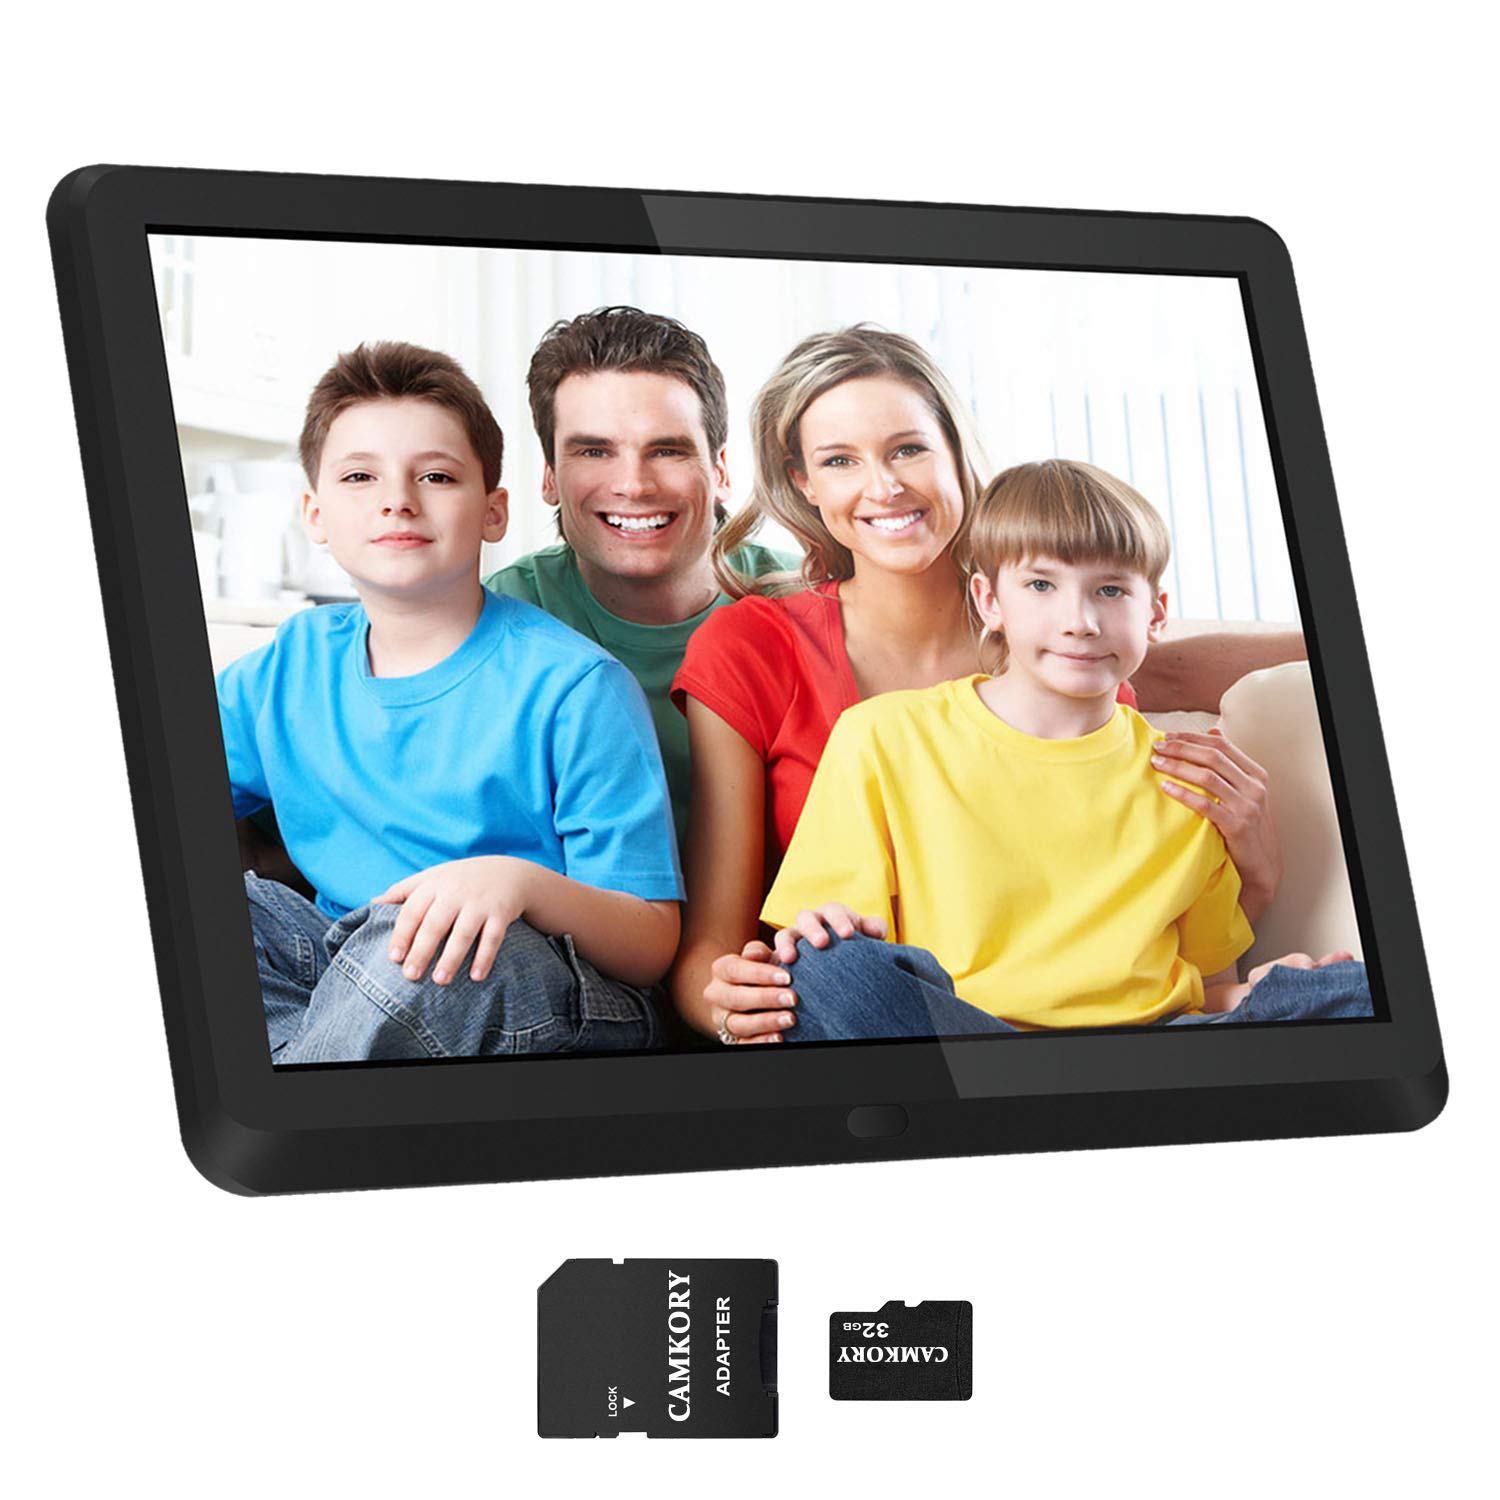 1920x1080 16:9 IPS Screen 10 inches Digital Photo Frame + 32GB SD Card HD Digital Picture Frame Widescreen, 1080P HD Video Frame, Photos Auto Rotate, Support Thumb USB Drive, SD/MMC/MS Card(Black) by Camkory